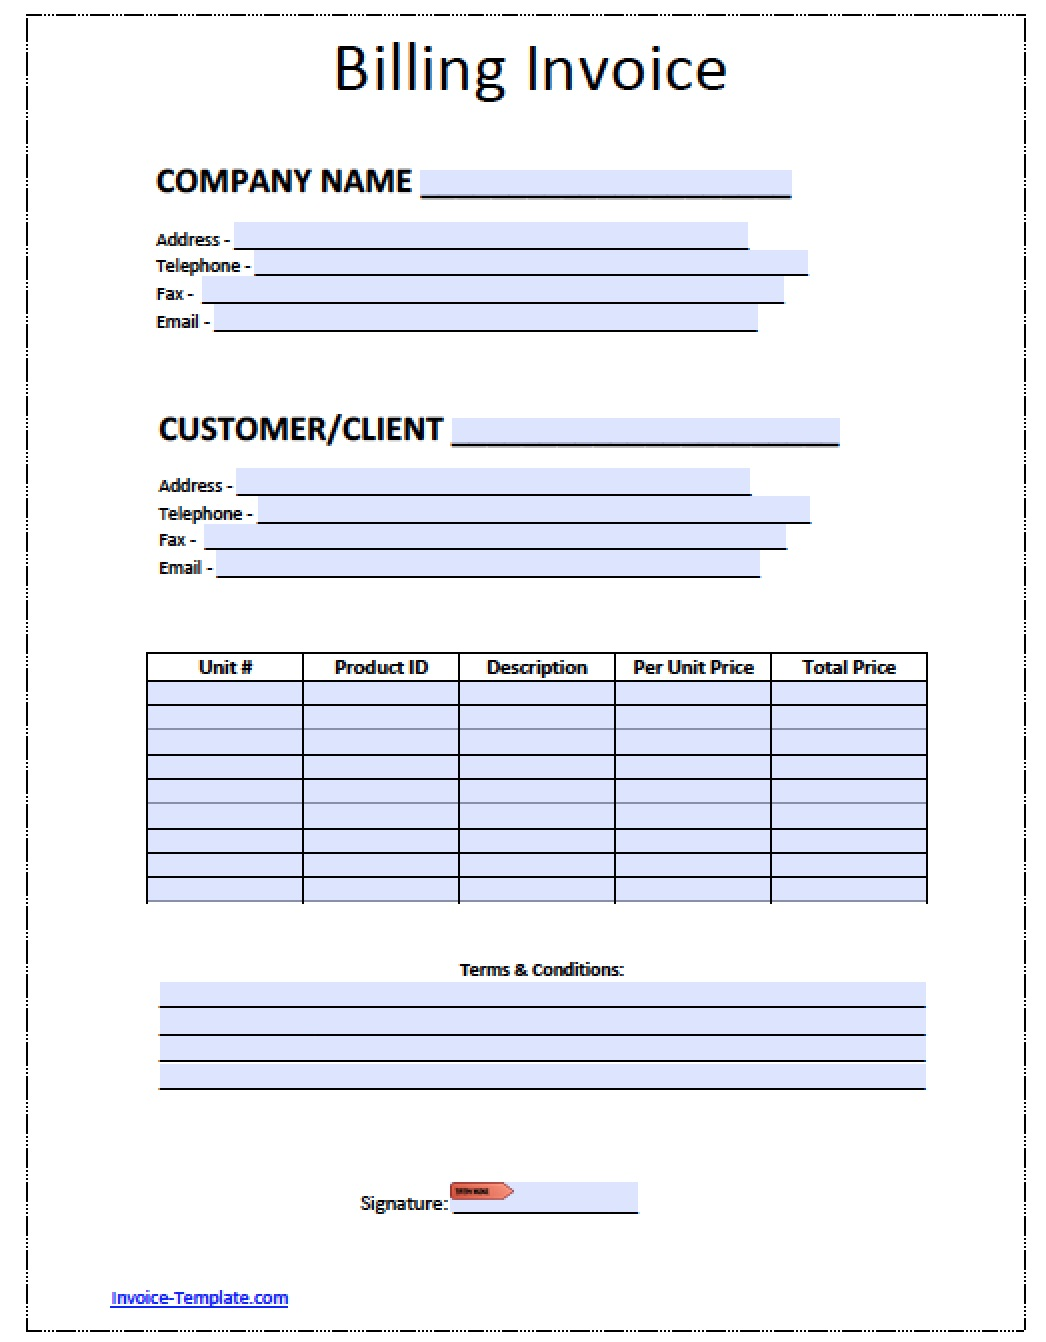 Ebitus  Marvelous Billing Invoice Invoices Faq U Cloudflare Support Billing  With Interesting Free Billing Invoice Template  Excel  Pdf  Word Doc  Billing With Comely Invoice Template Quickbooks Also Ups Invoice Tracking In Addition Invoice Terms And Conditions Example And Customer Invoice Template As Well As Ar Invoice Additionally What Is Invoice Financing From Happytomco With Ebitus  Interesting Billing Invoice Invoices Faq U Cloudflare Support Billing  With Comely Free Billing Invoice Template  Excel  Pdf  Word Doc  Billing And Marvelous Invoice Template Quickbooks Also Ups Invoice Tracking In Addition Invoice Terms And Conditions Example From Happytomco